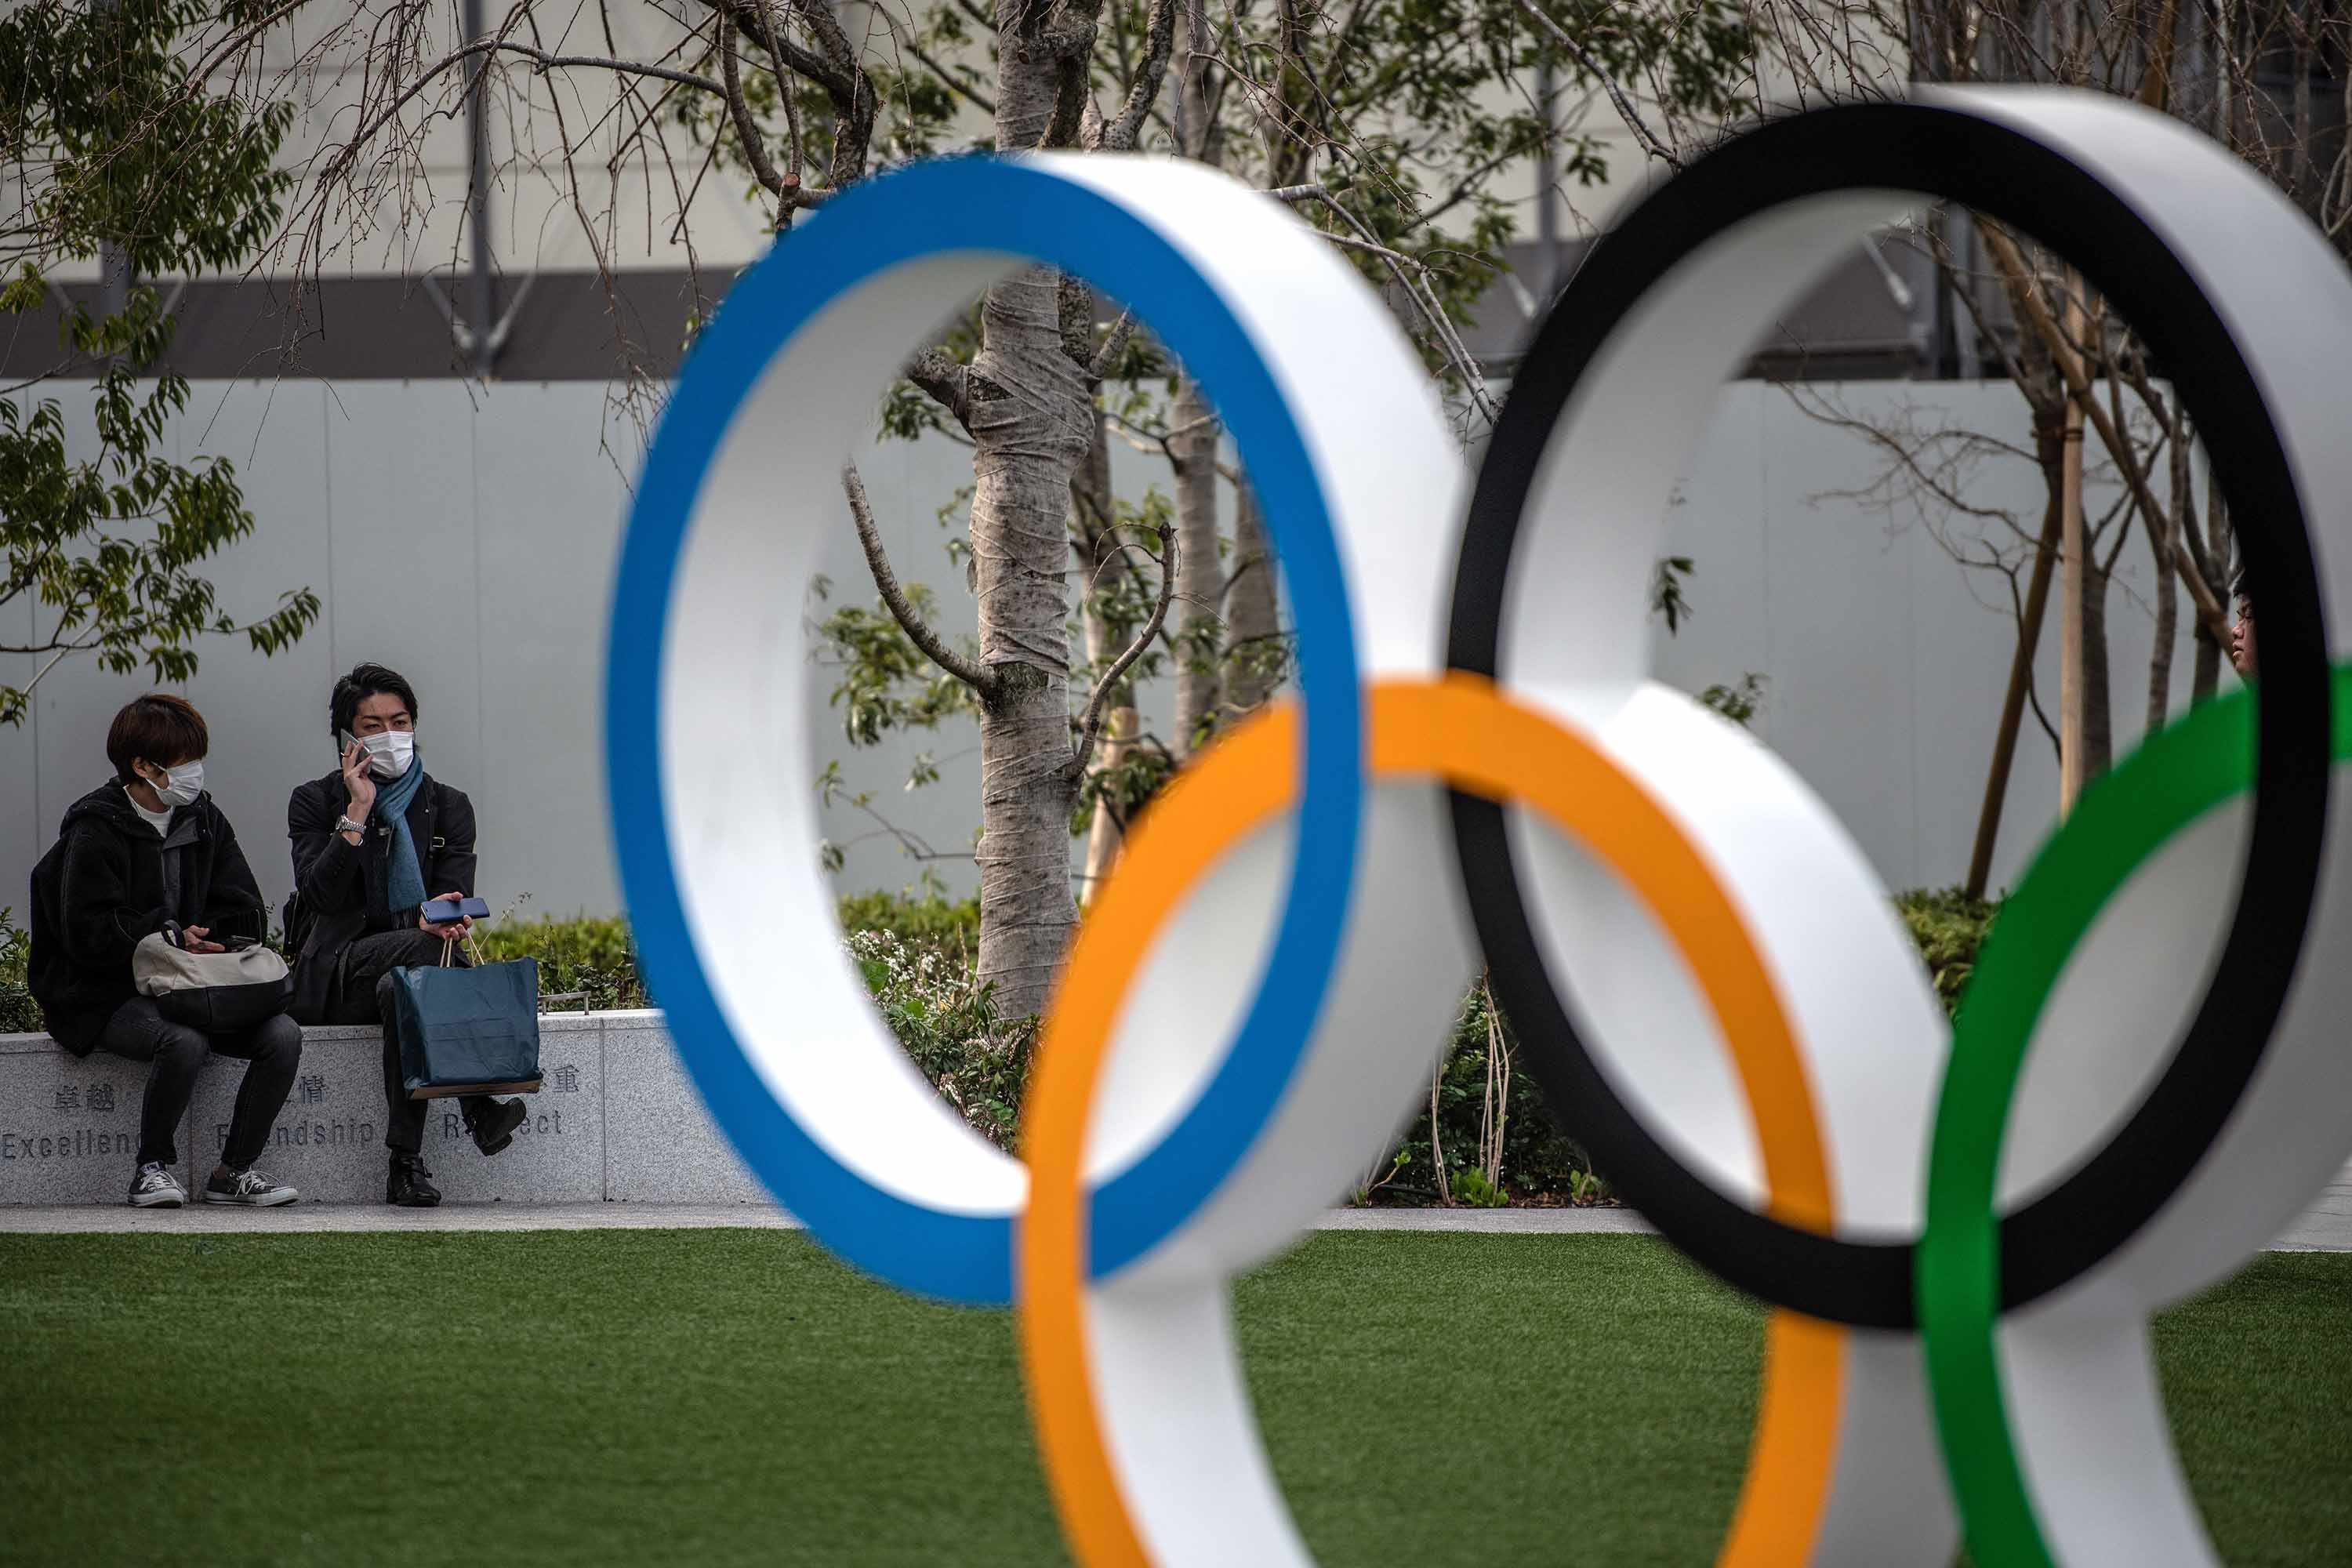 People wearing face masks are pictured next to the Olympic Rings on March 13 in Tokyo, Japan.